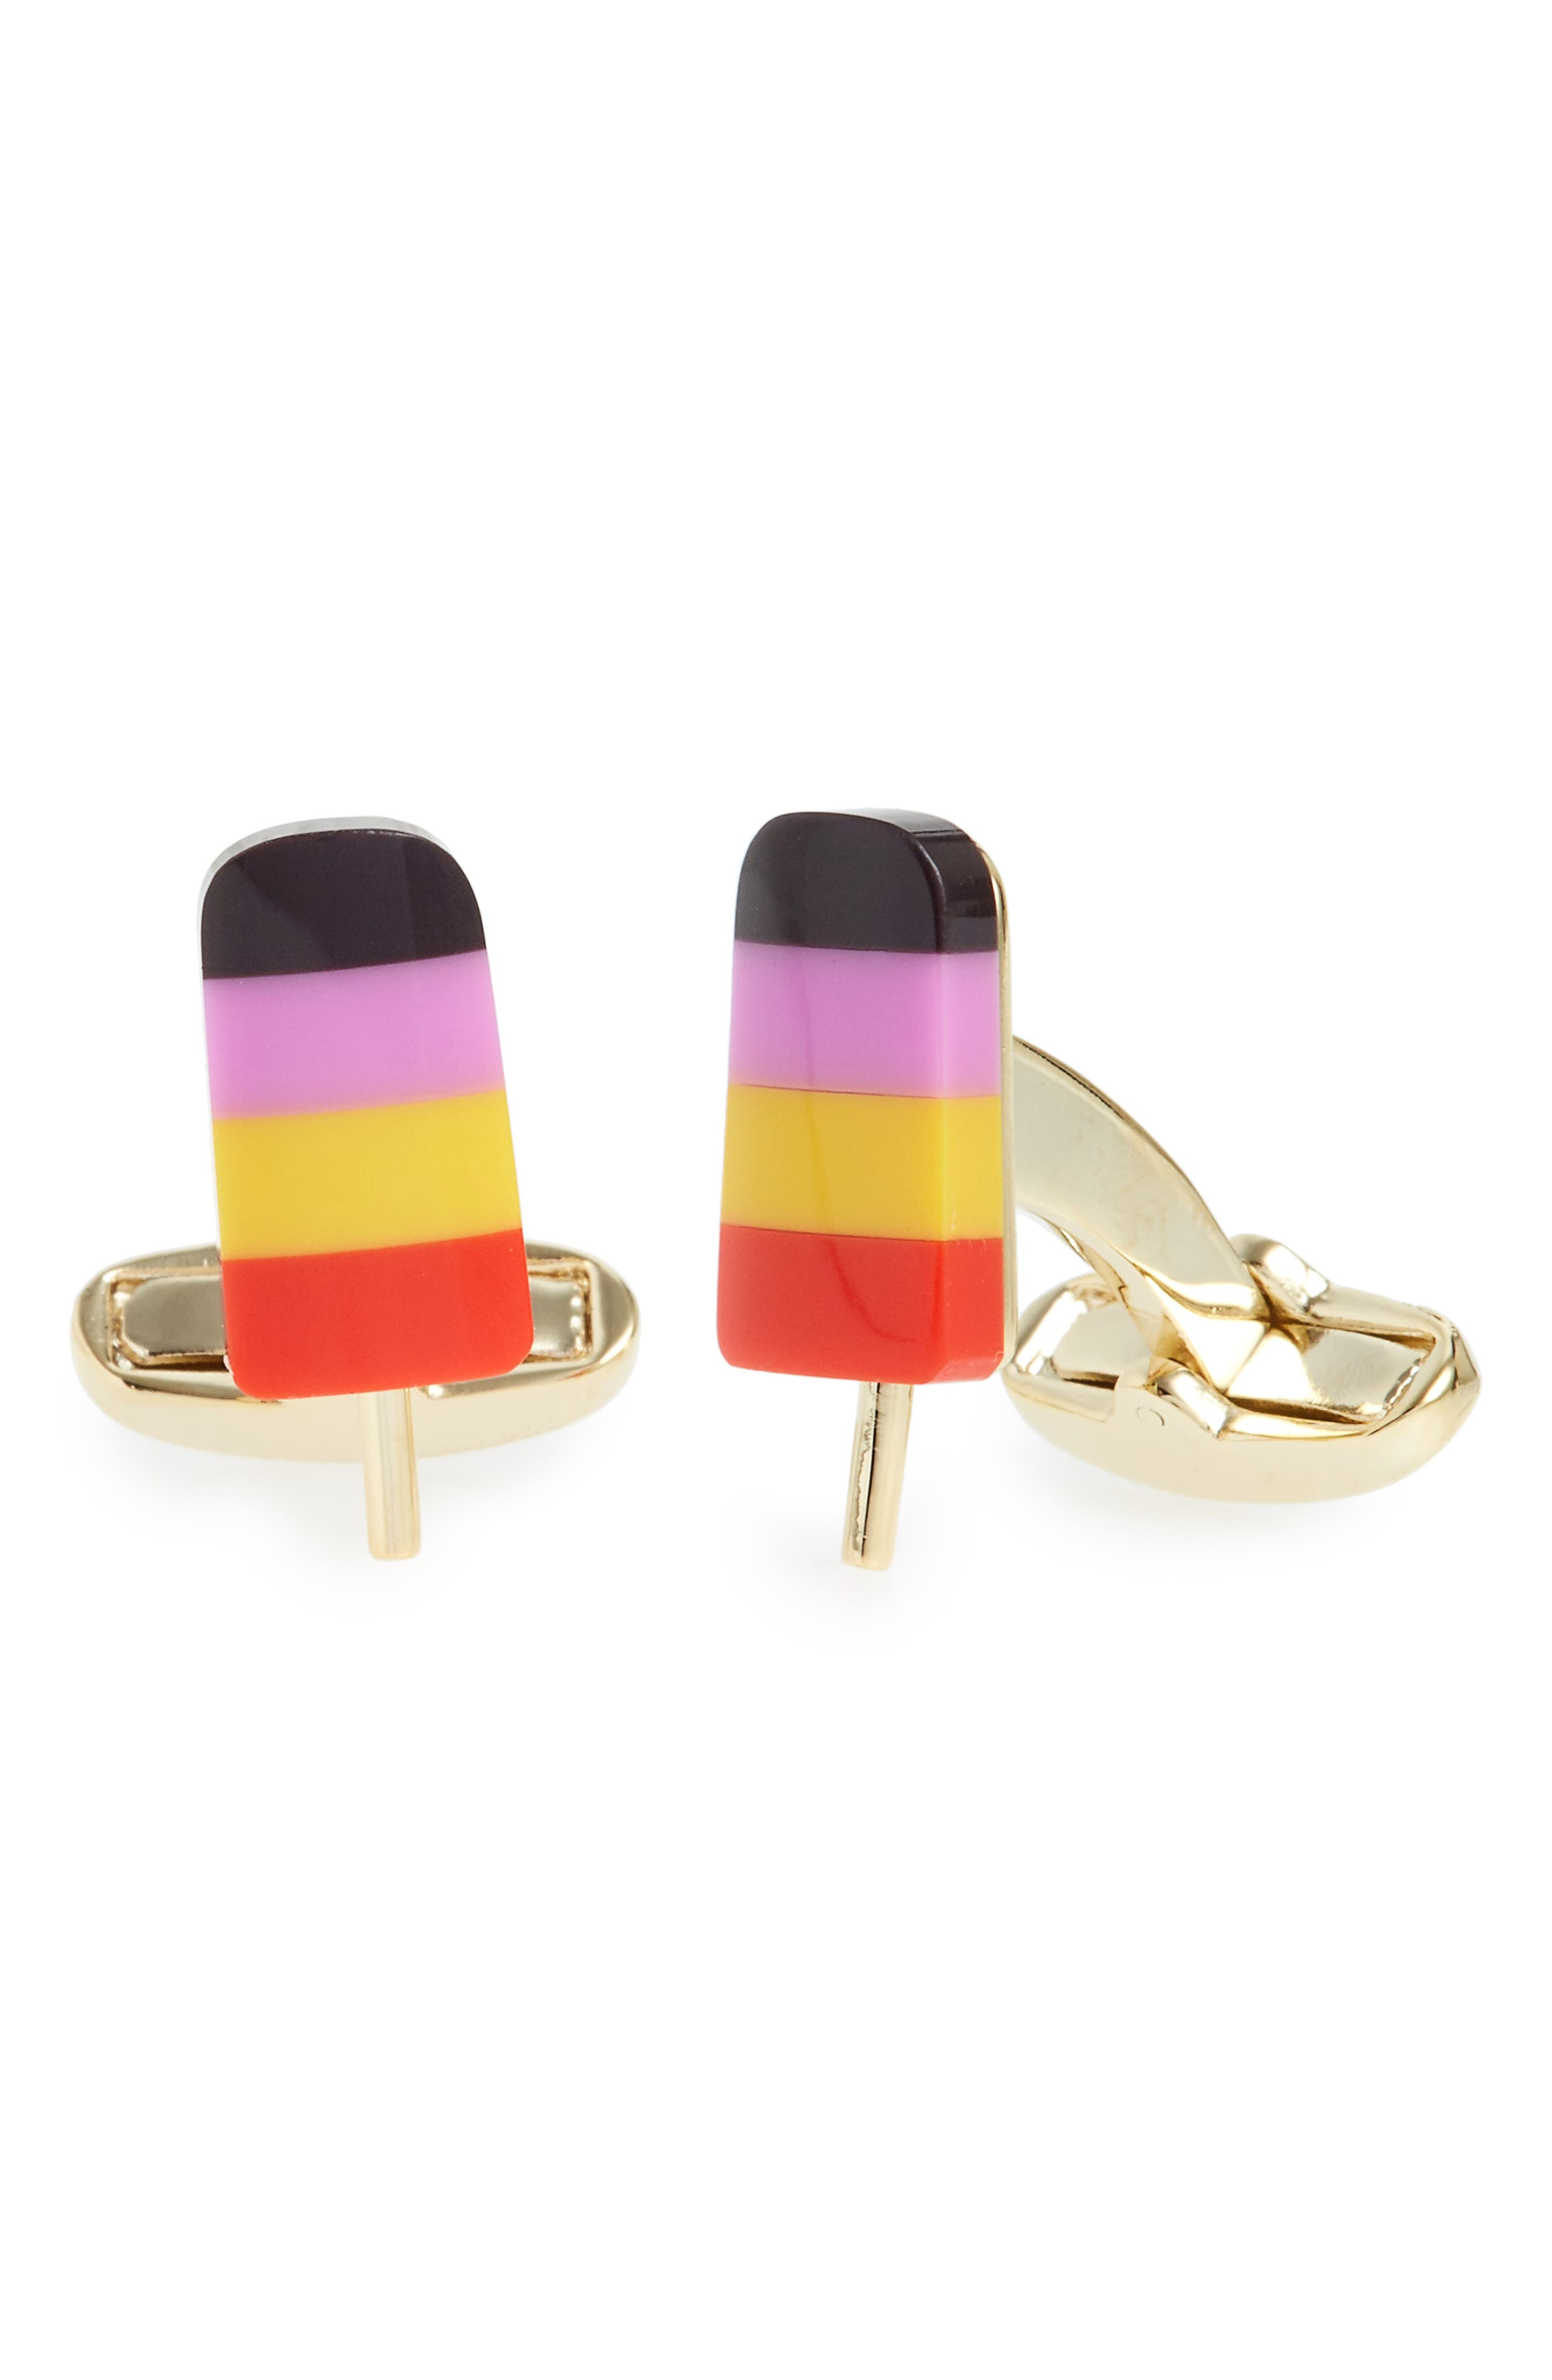 Popsicle Cuff Links,                         Main,                         color, Mixed Plating 1